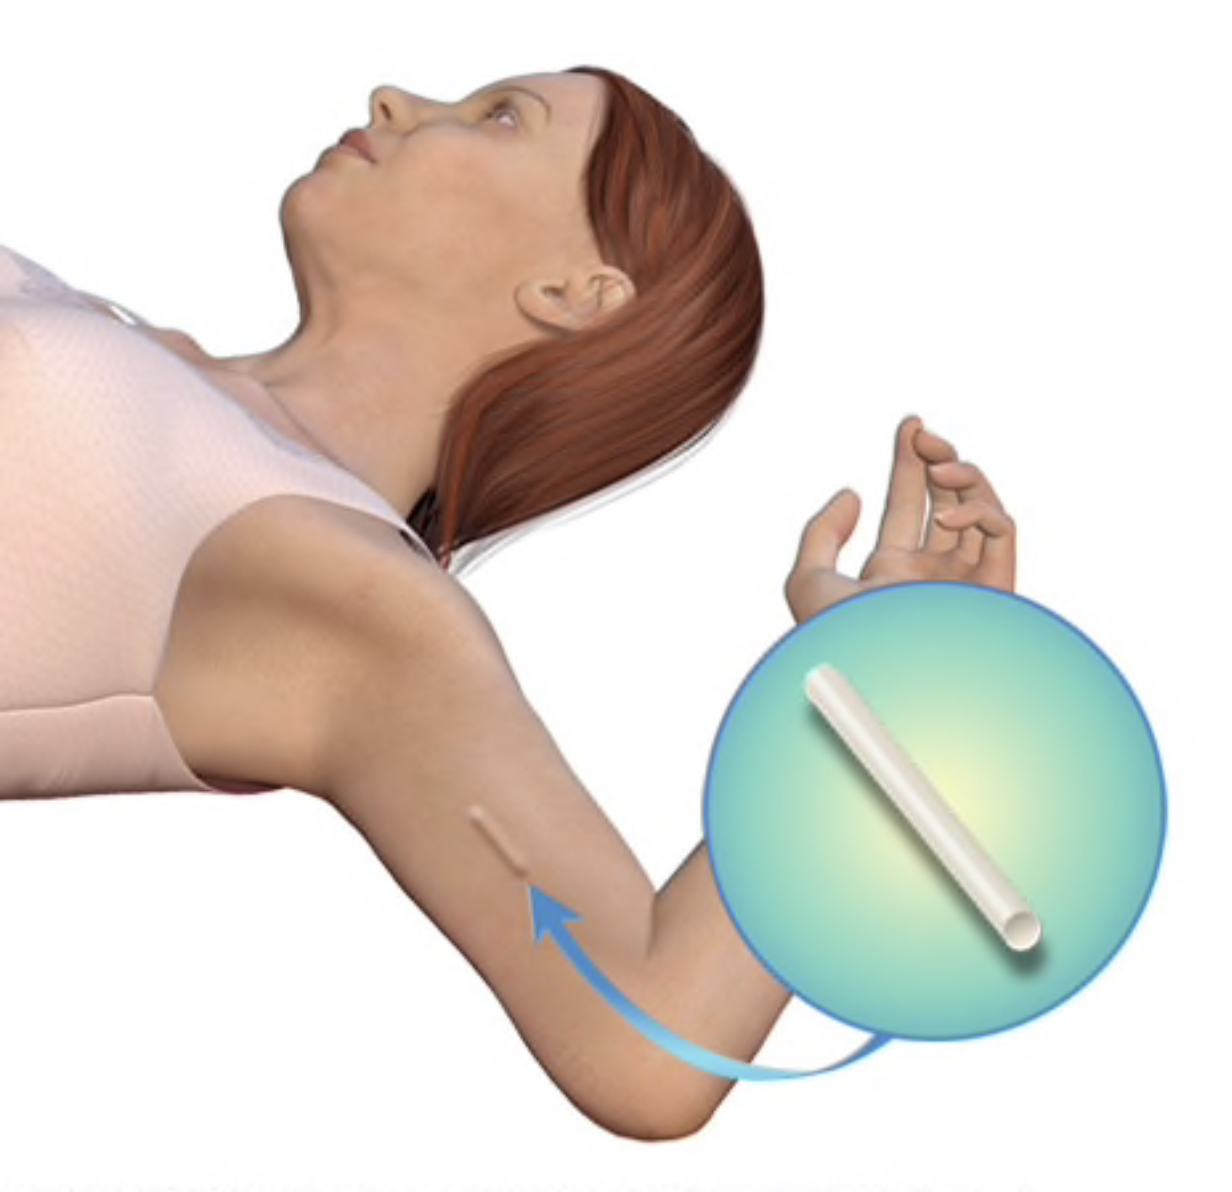 Contraceptive implants in the arm of a woman